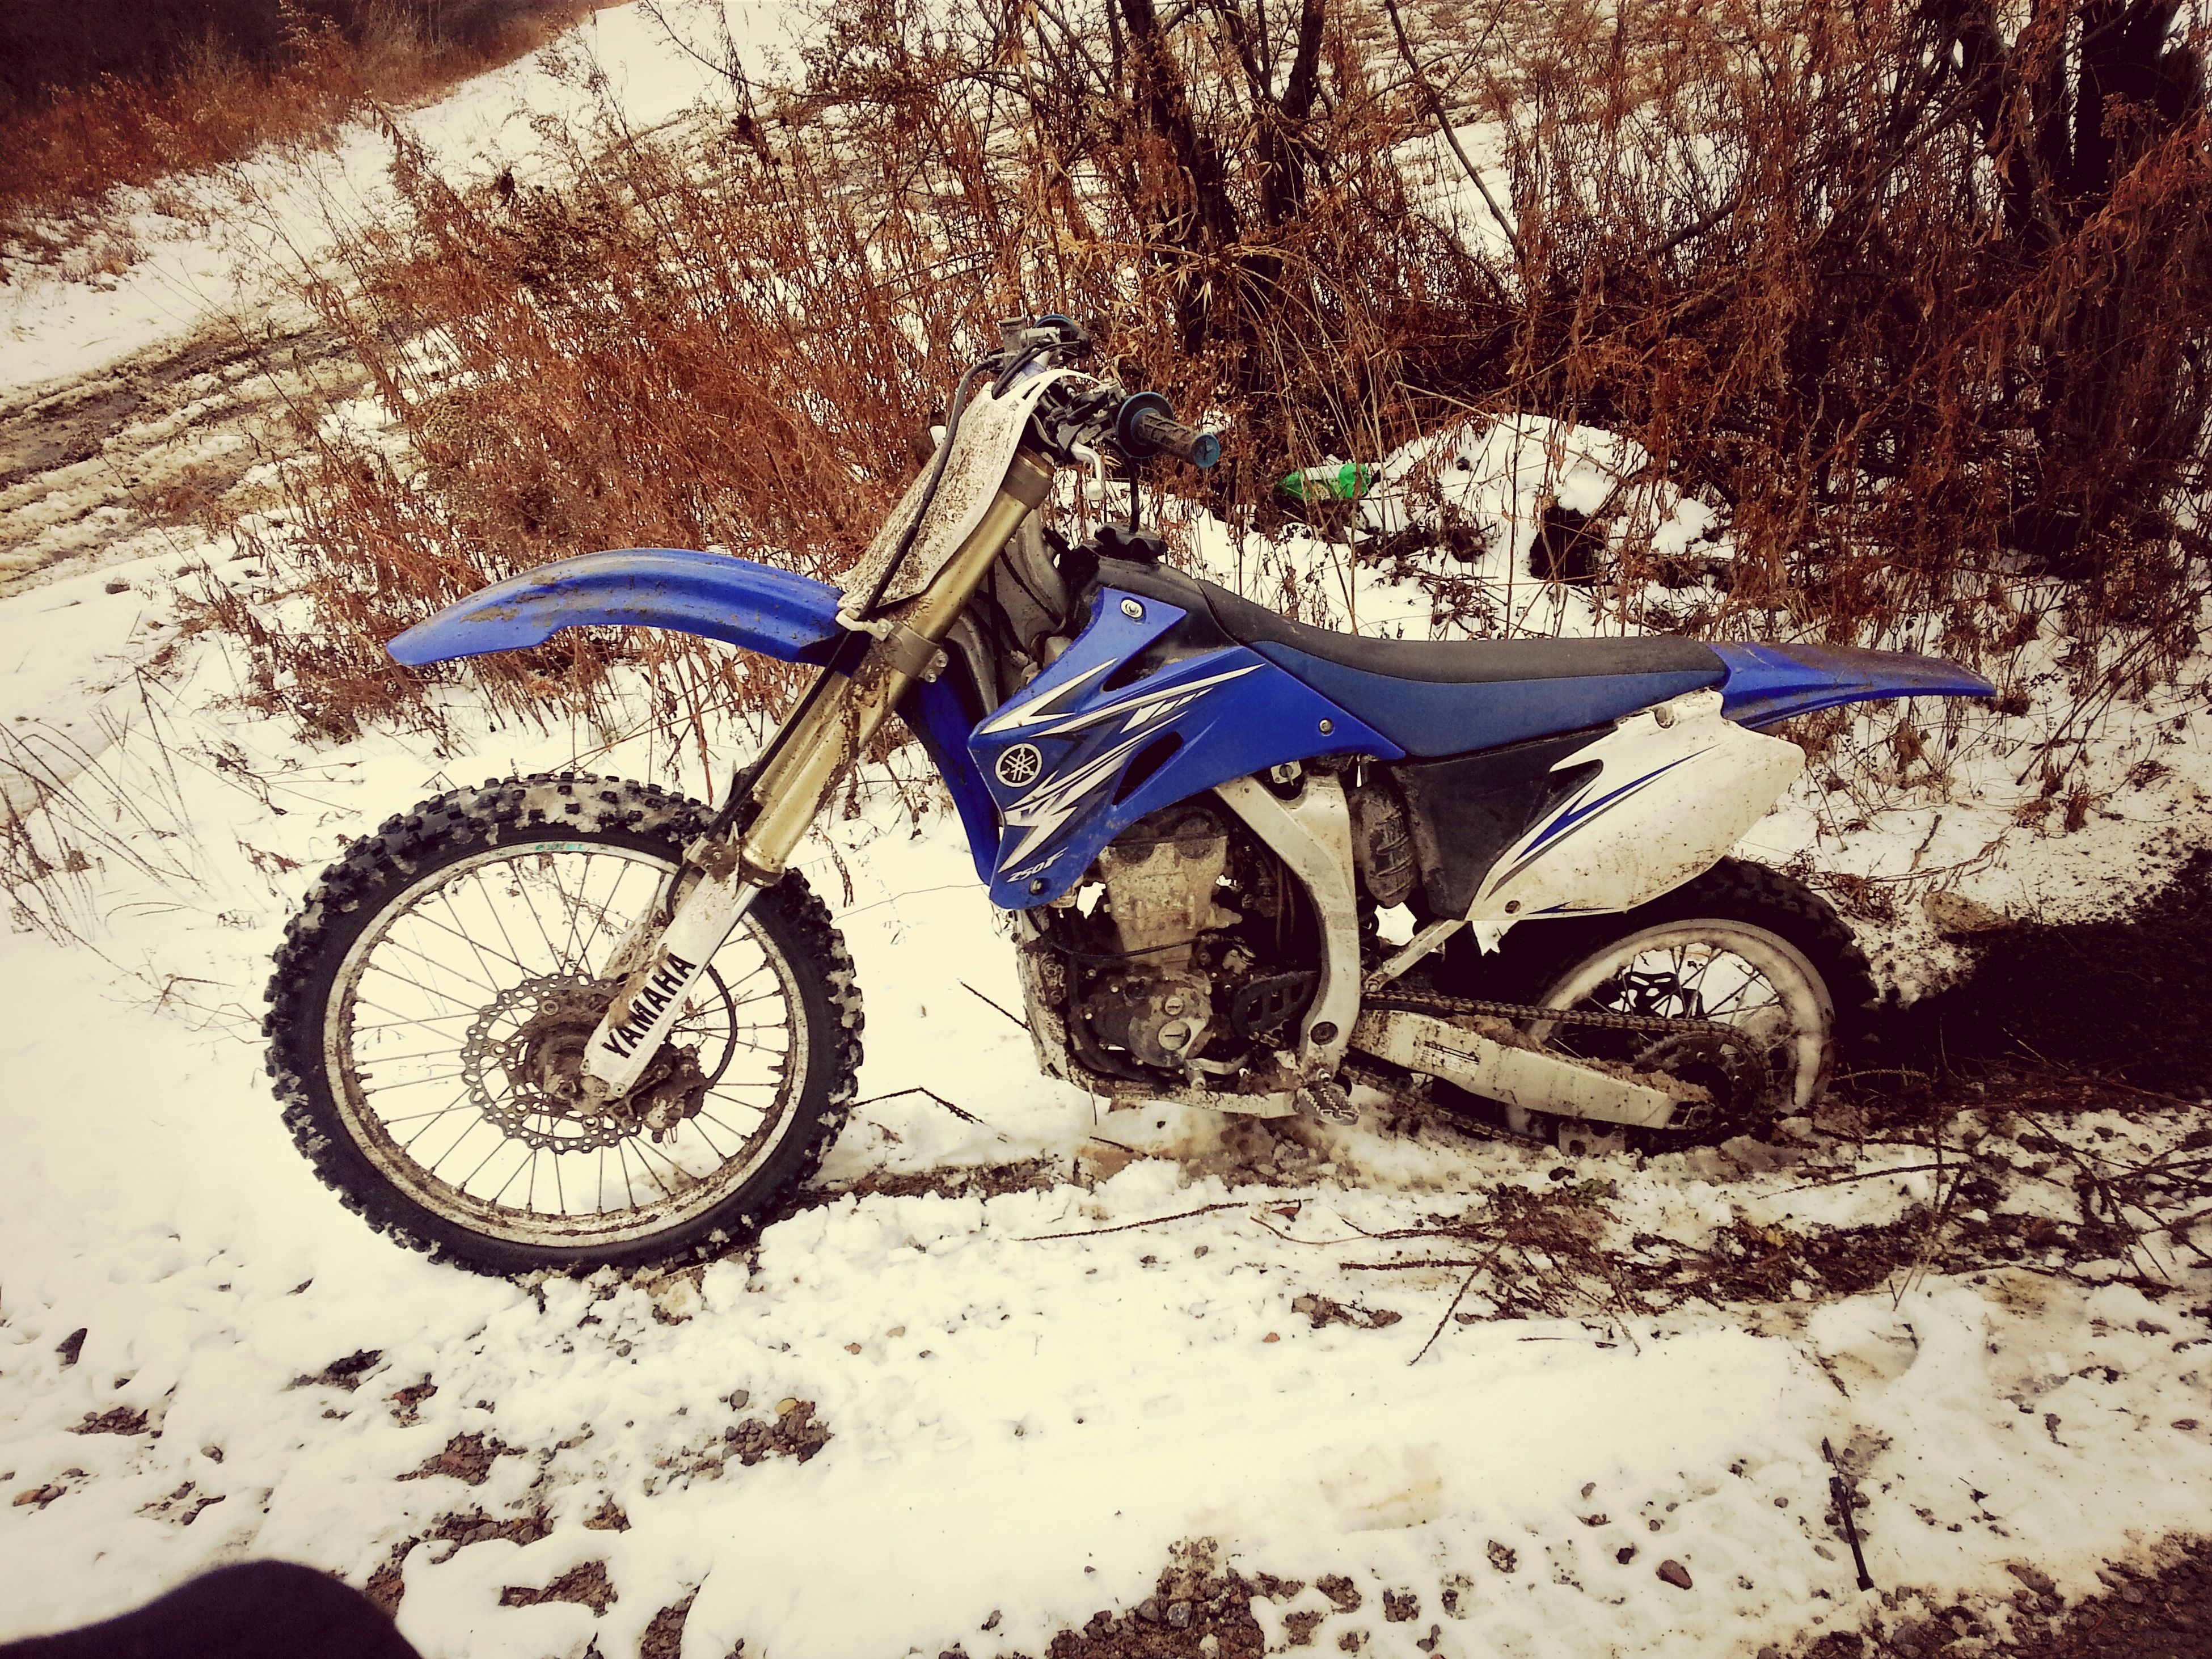 Everyone wants to ride there sleds im like Brapp  Haveing A Good Time Yamaha Mysled